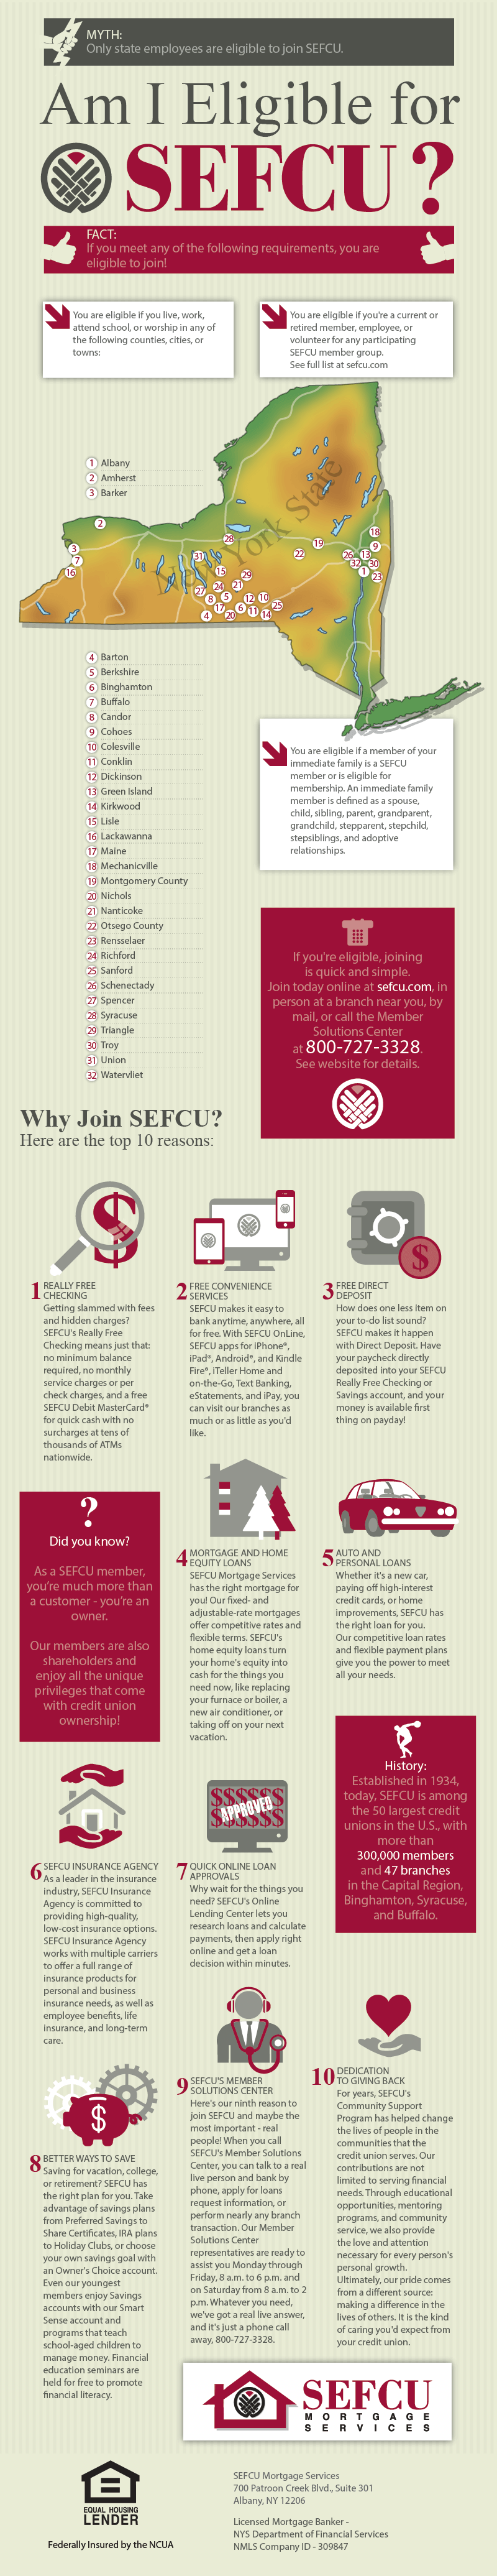 Are You Eligible For SEFCU?